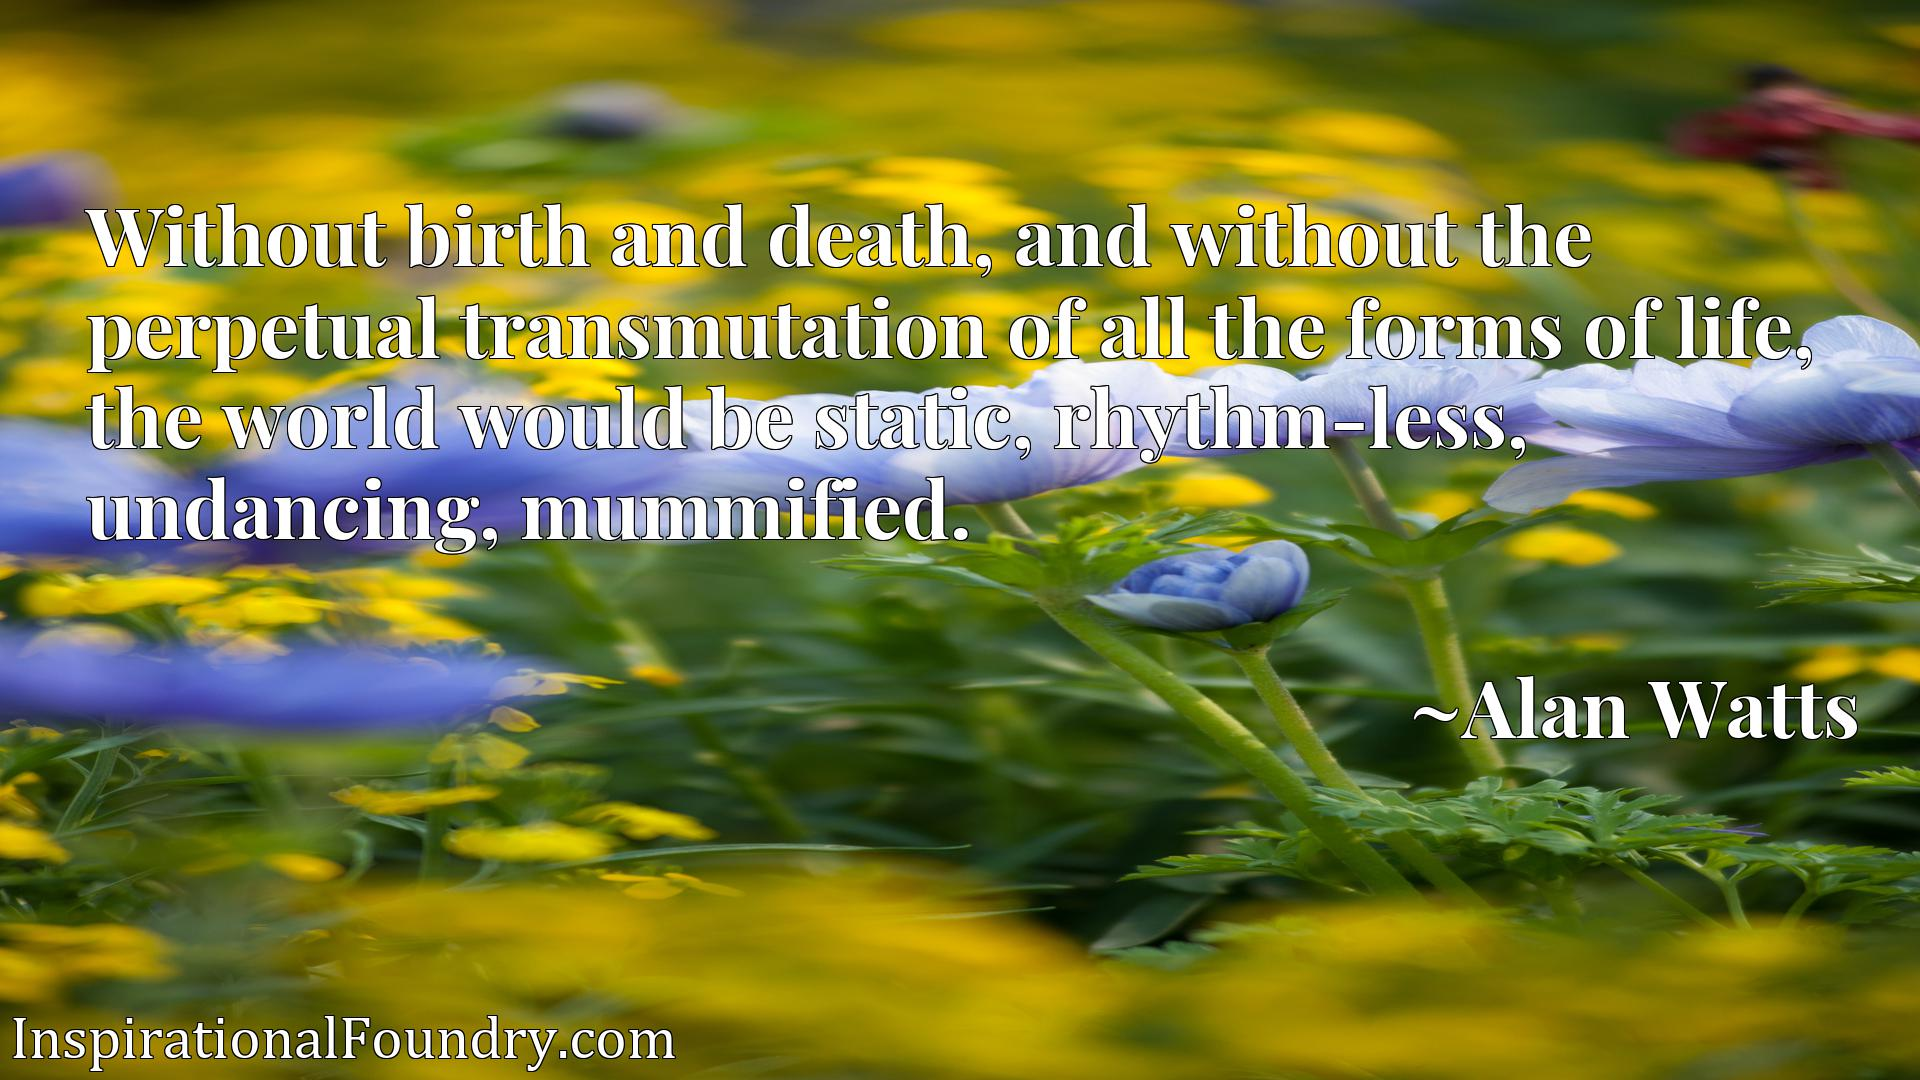 Without birth and death, and without the perpetual transmutation of all the forms of life, the world would be static, rhythm-less, undancing, mummified.